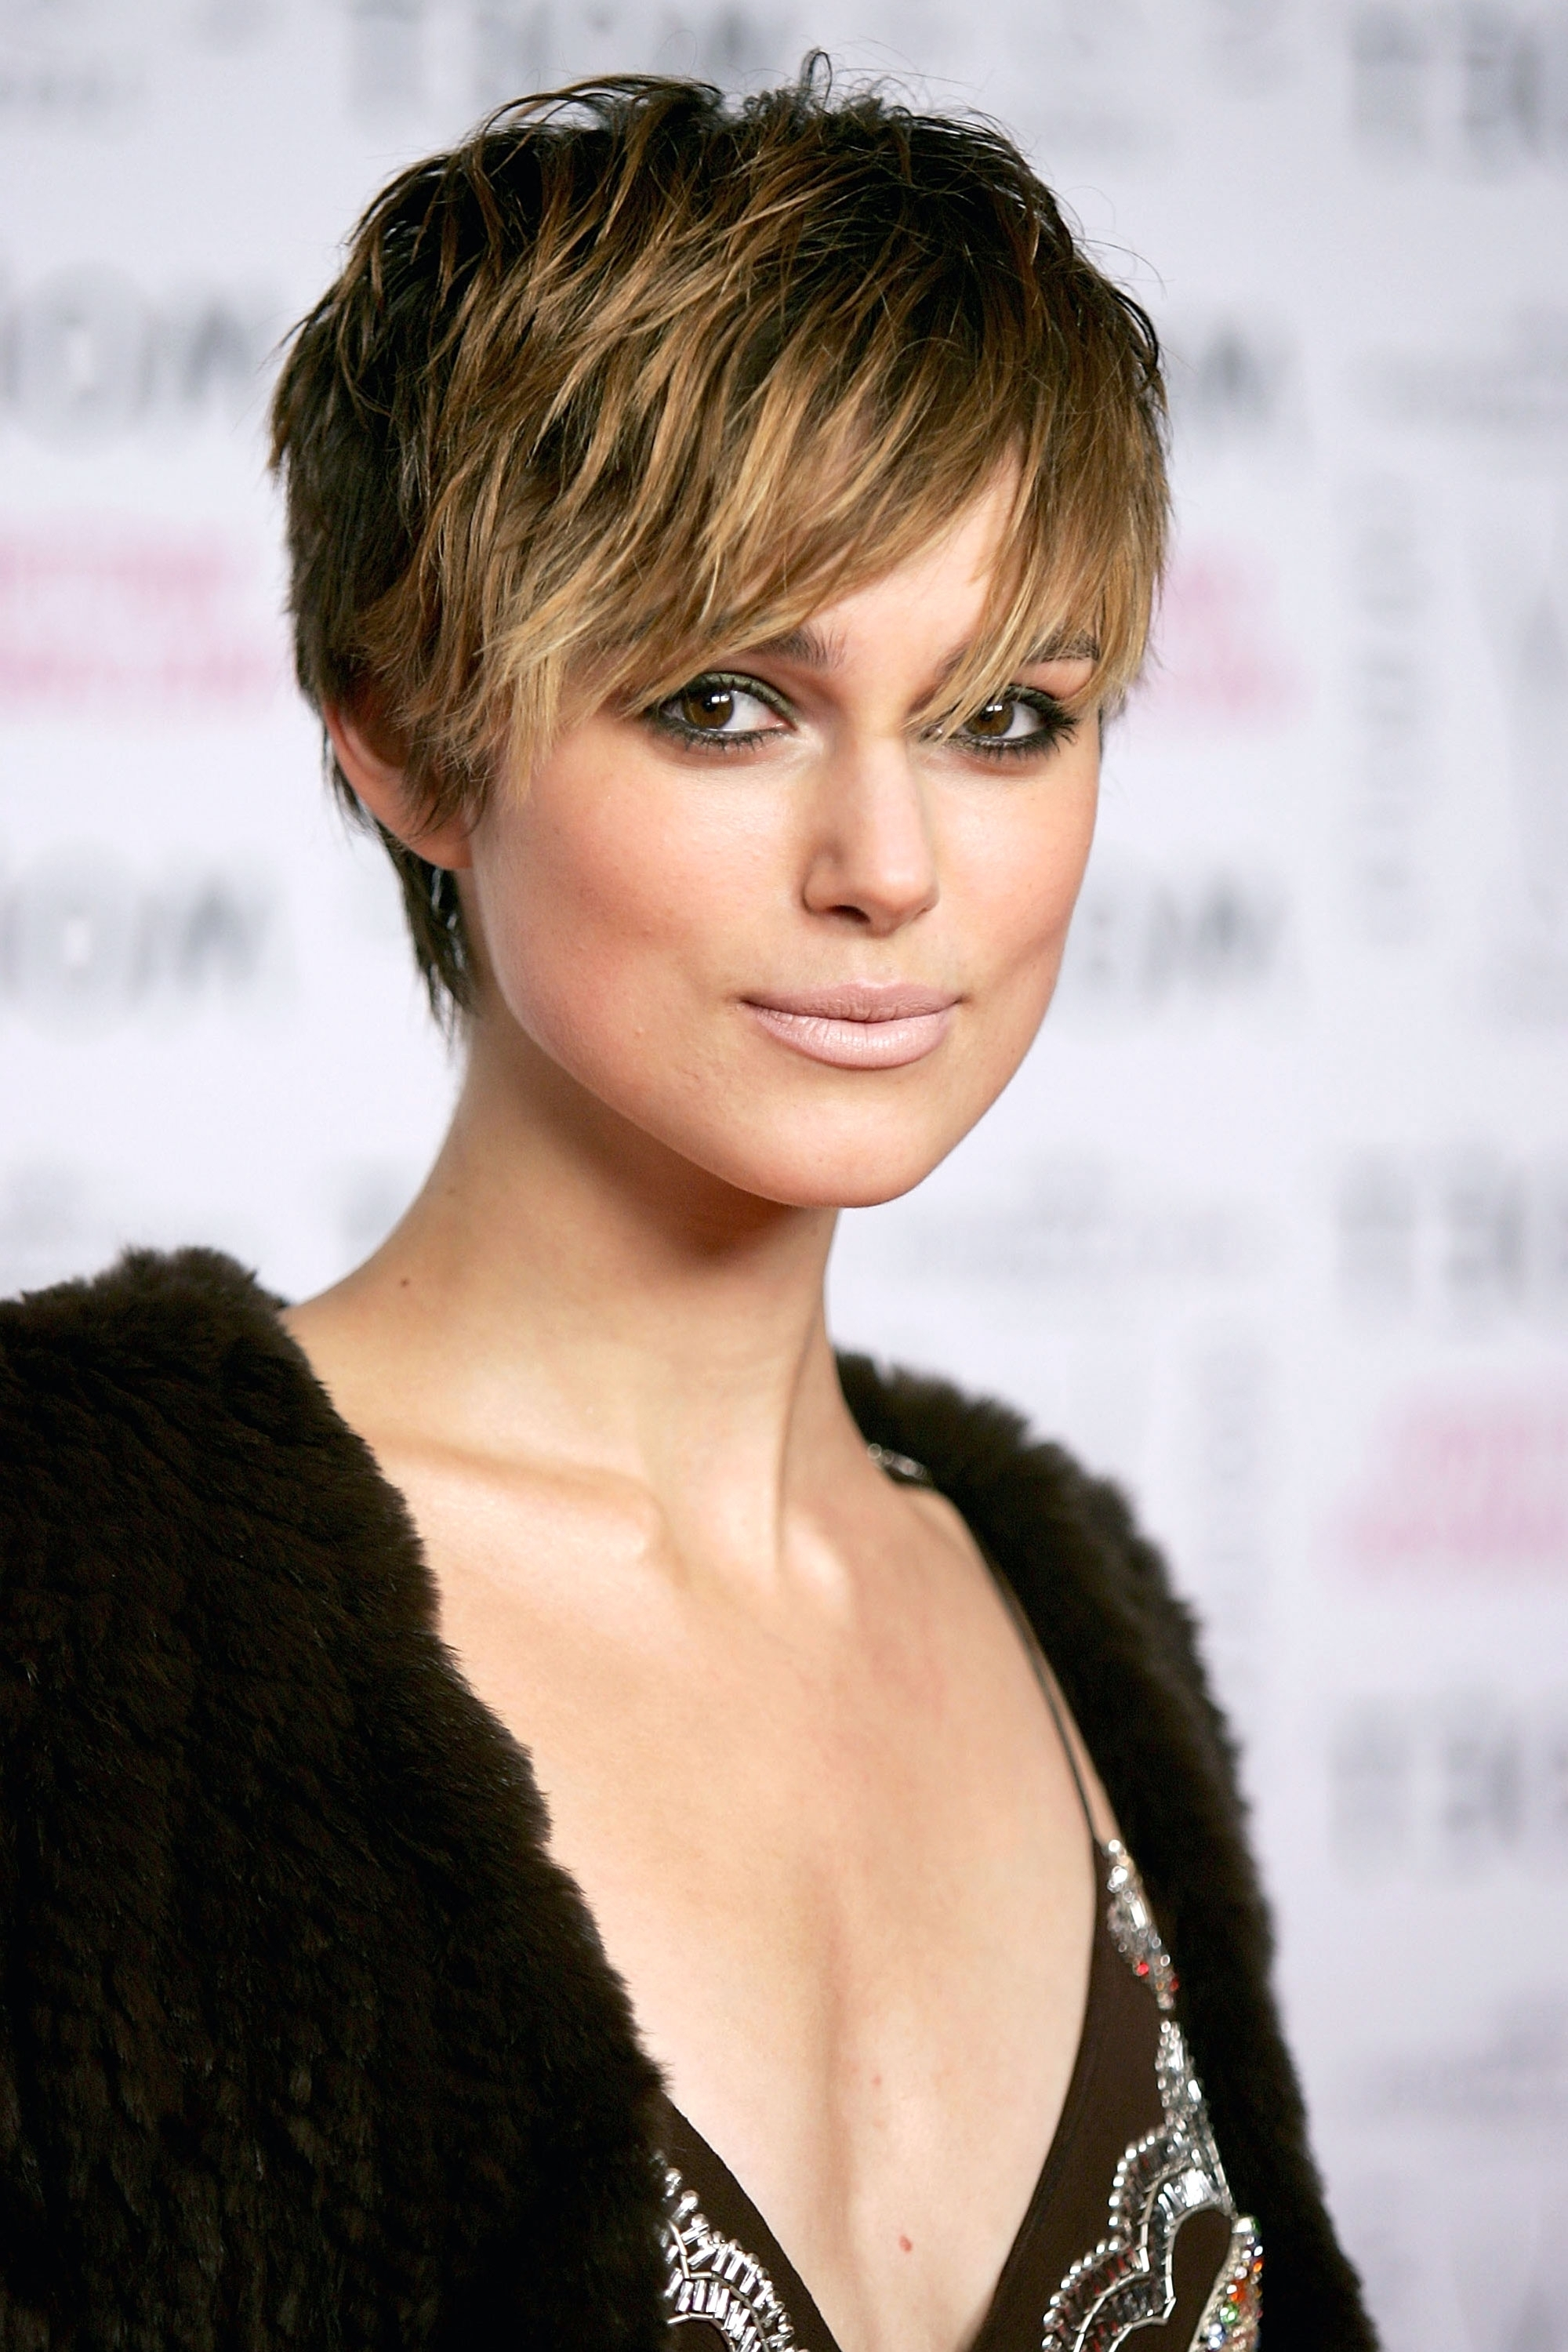 40 Pixie Cuts We Love For 2017 Short Pixie Hairstyles From Inside In Most Popular Pixie Hairstyles With Short Bangs (View 2 of 15)